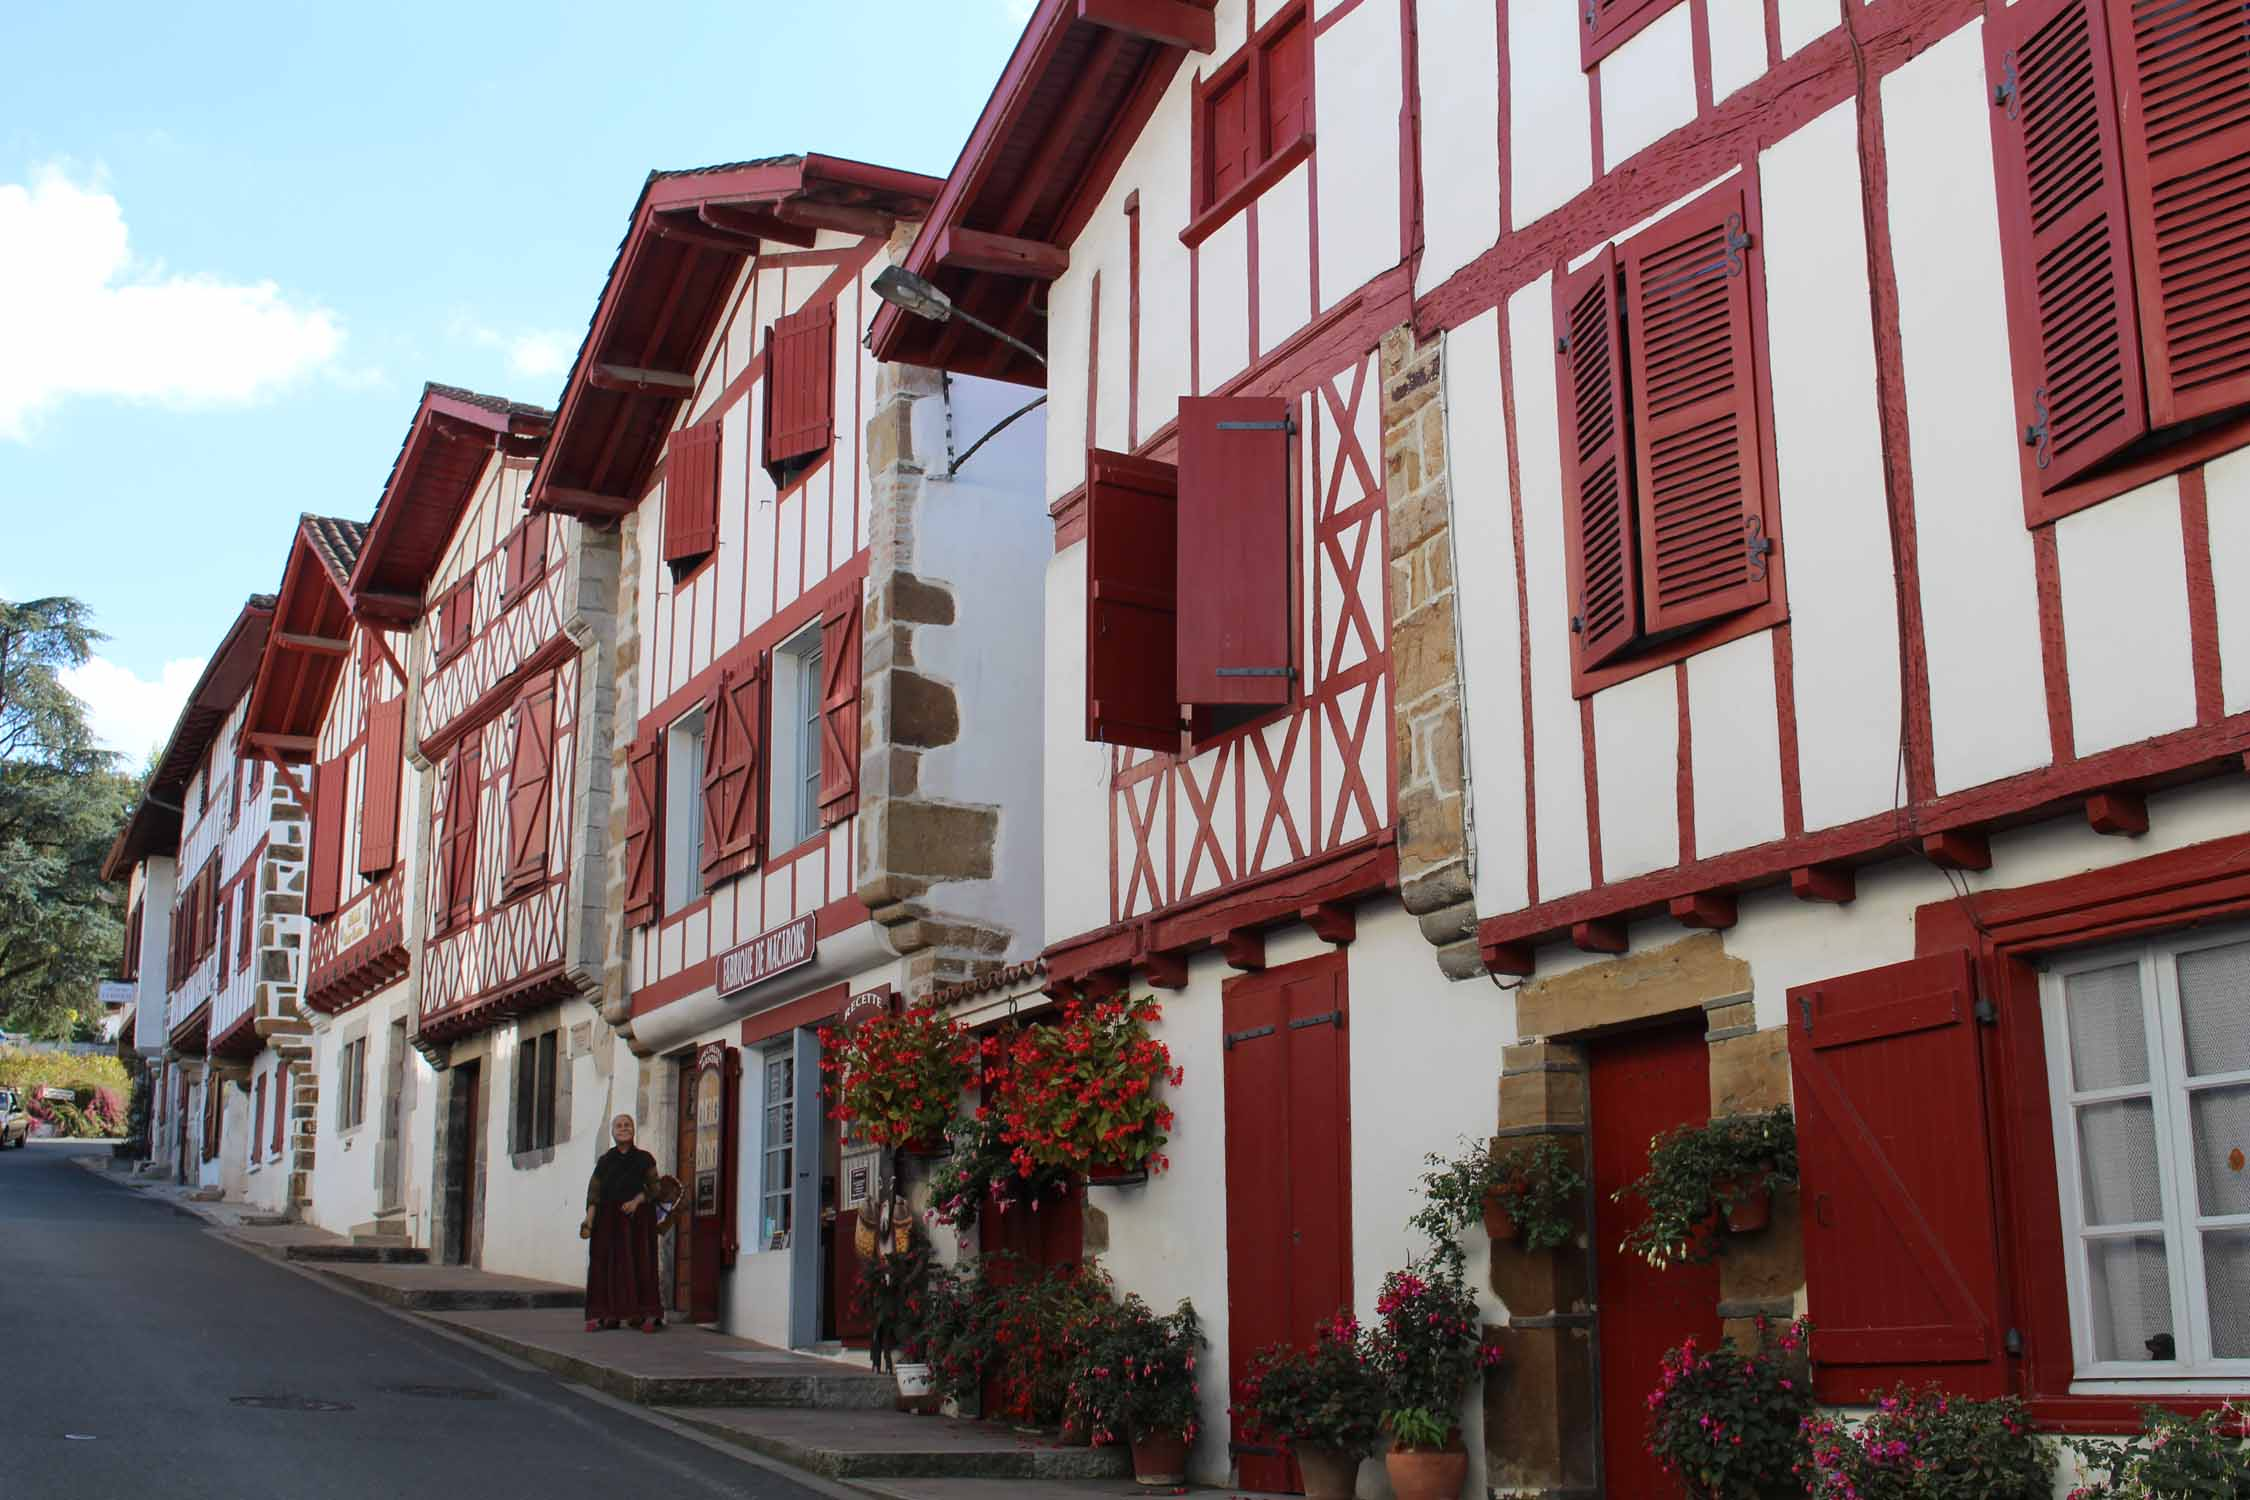 La Bastide Clairence, white and red houses